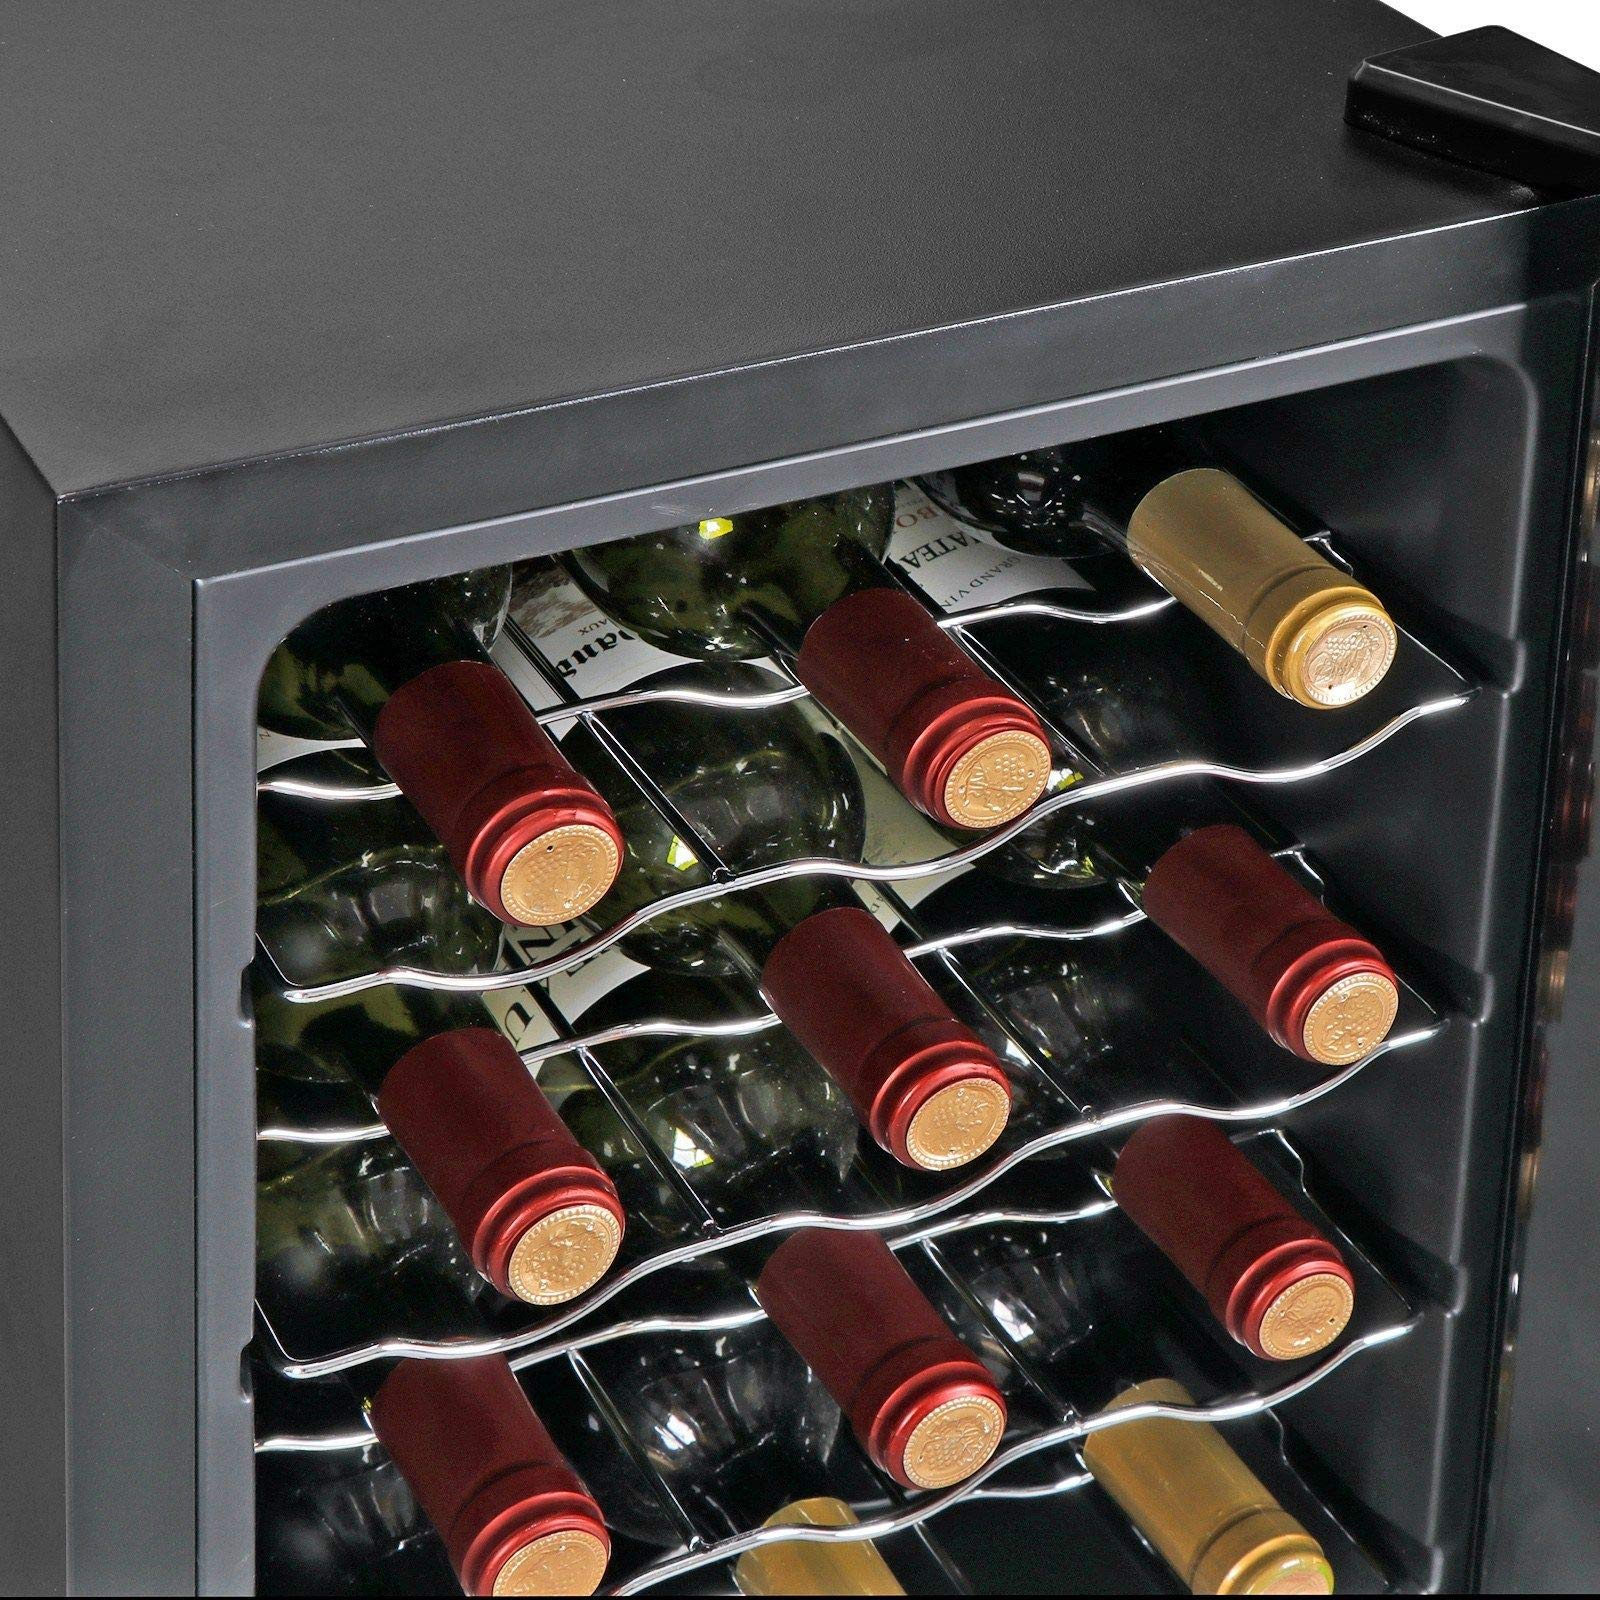 AK Energy 18 Bottles Wine Cooler Refrigerator Air-tight Seal Quiet 50-64 F Temperature Control by AK Energy (Image #9)